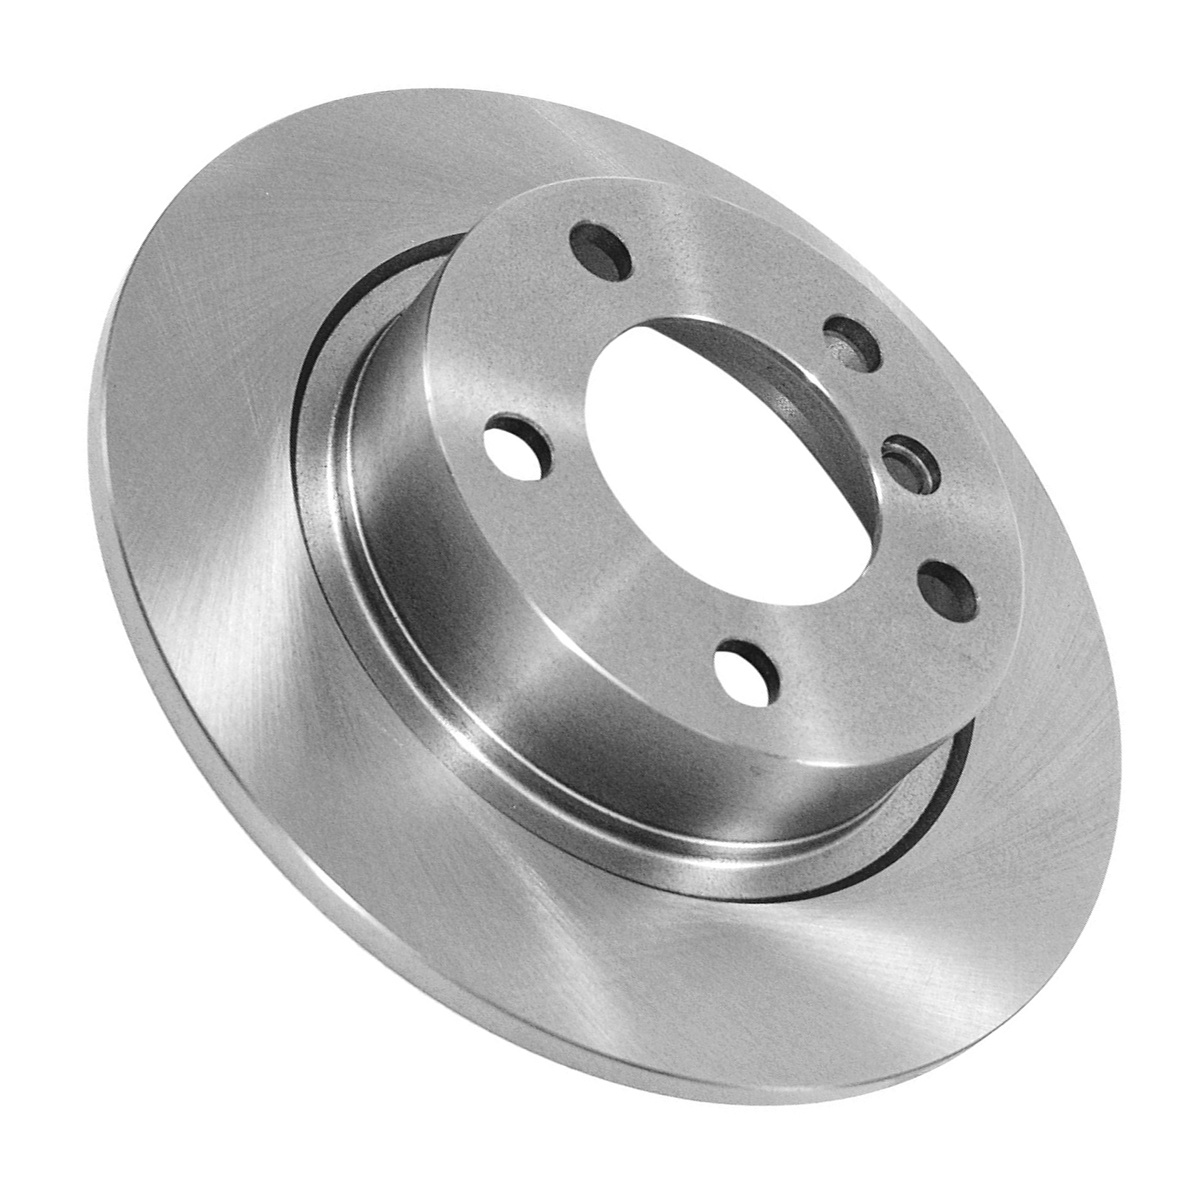 Solid Brake Disc 230mm Car Parts Aftermarket